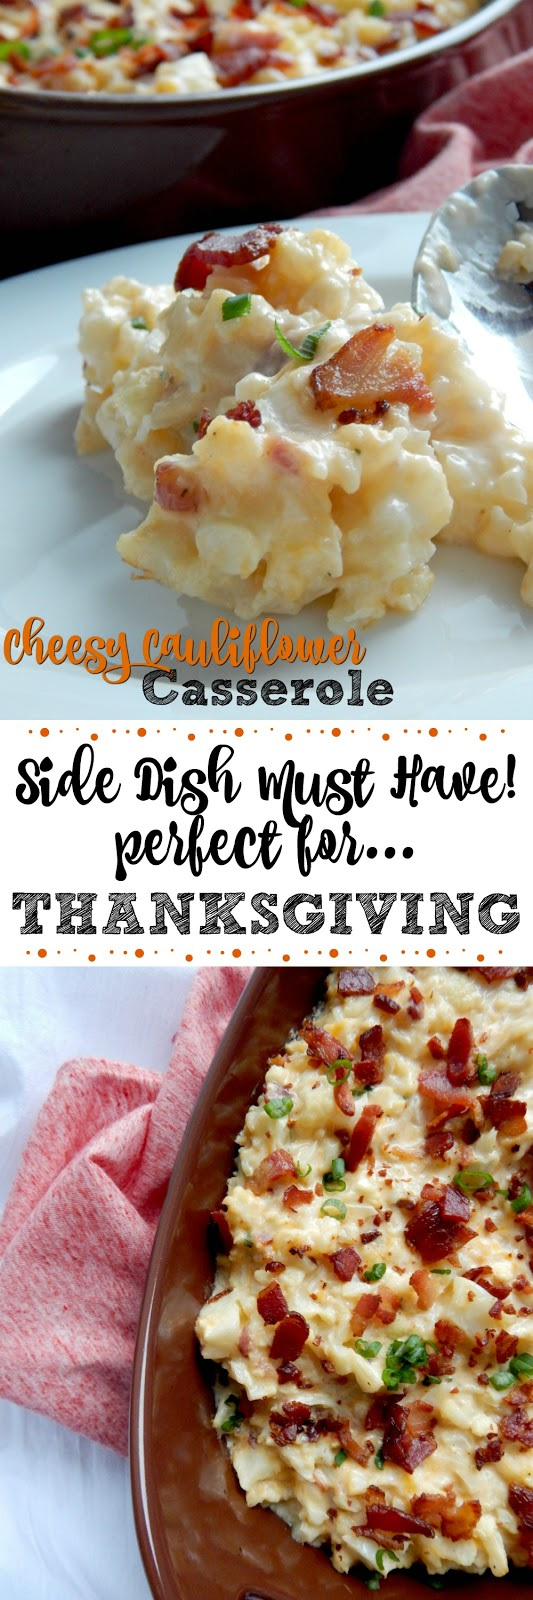 Cheesy Cauliflower Casserole...the perfect holiday side dish!  Built like a loaded baked potato, but swapped with steamed cauliflower.  Cheesy, salty, bacon-y...the best side dish of the year! (sweetandsavoryfood.com)